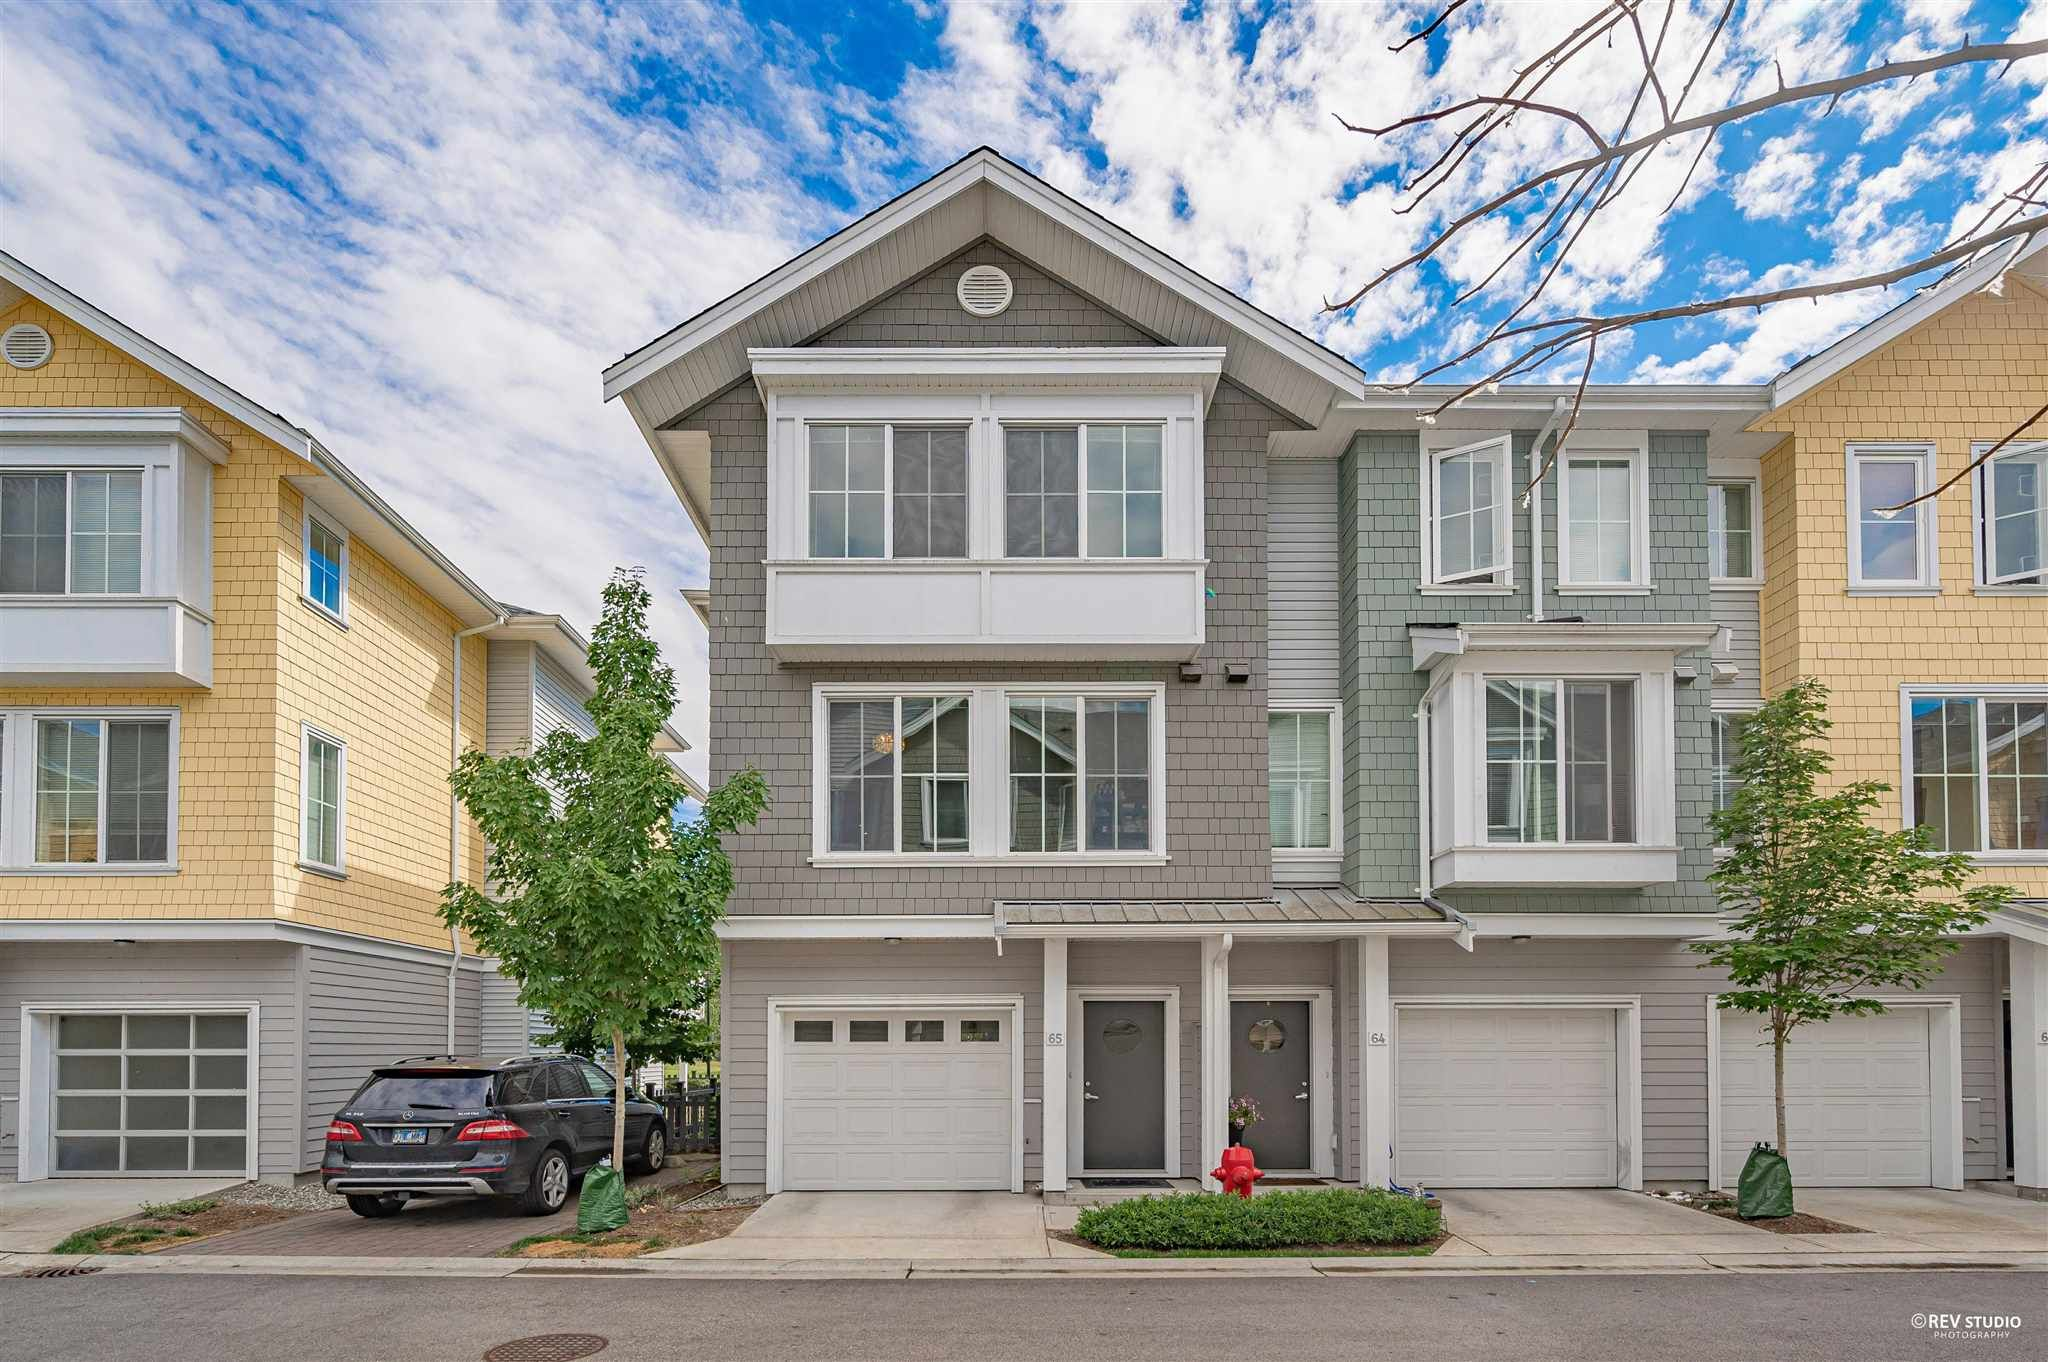 """Main Photo: 65 5550 ADMIRAL Way in Ladner: Neilsen Grove Townhouse for sale in """"Fairwinds at Hampton Cove"""" : MLS®# R2603931"""